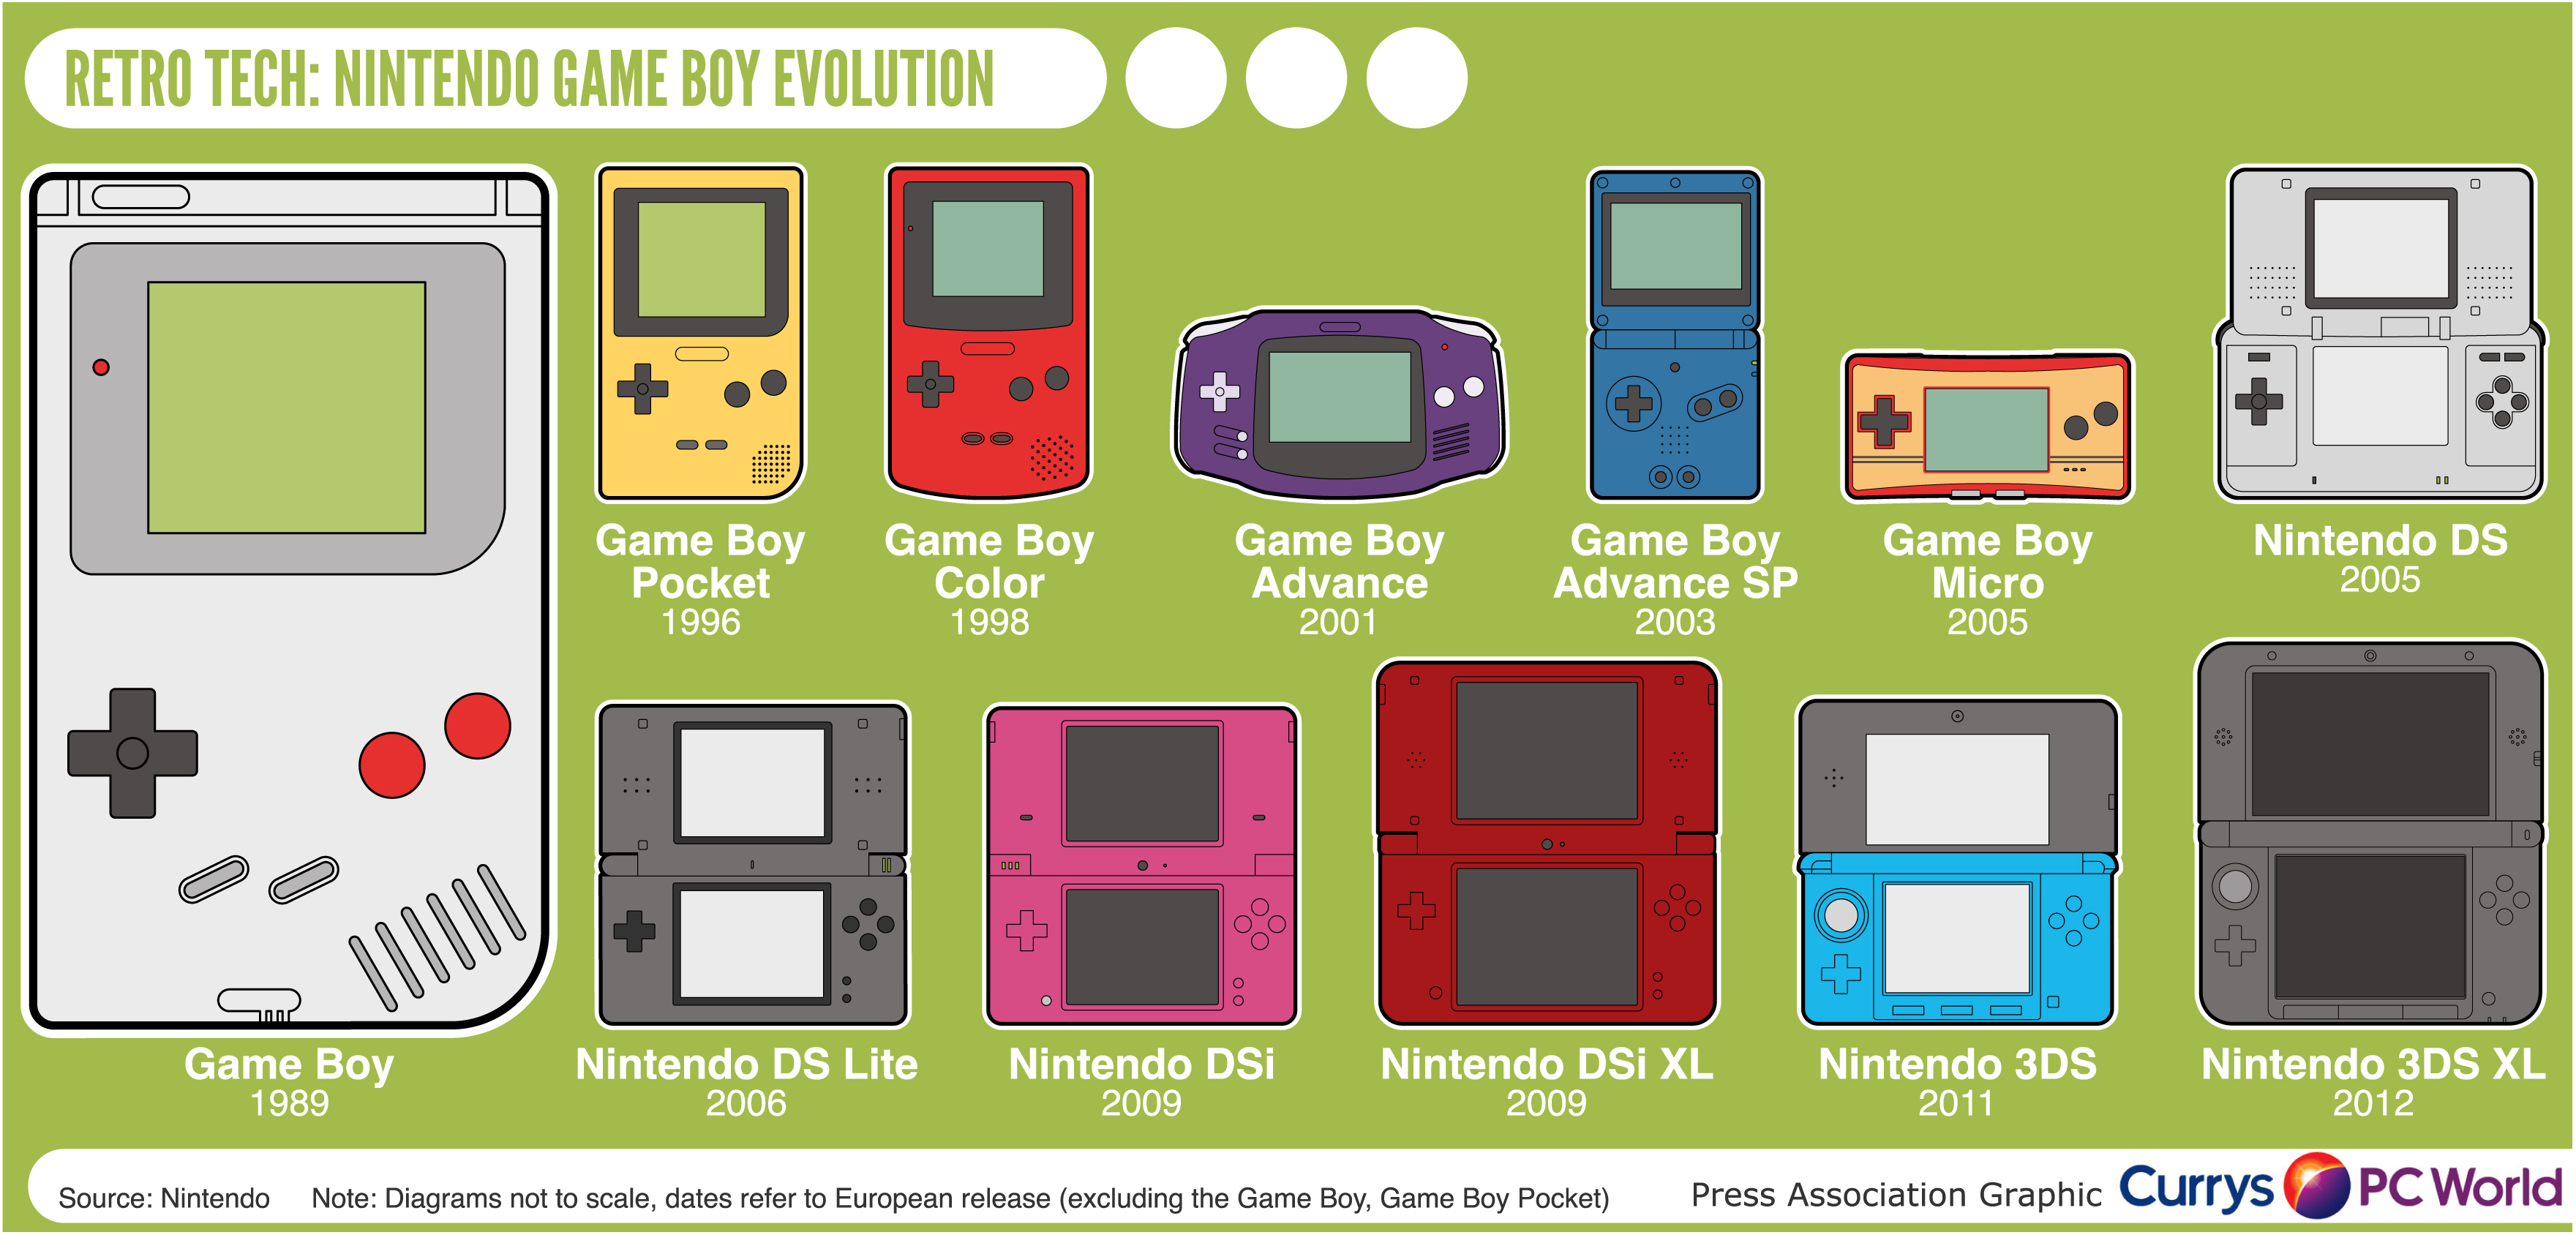 Retro Tech Nintendo Game Boy Evolution